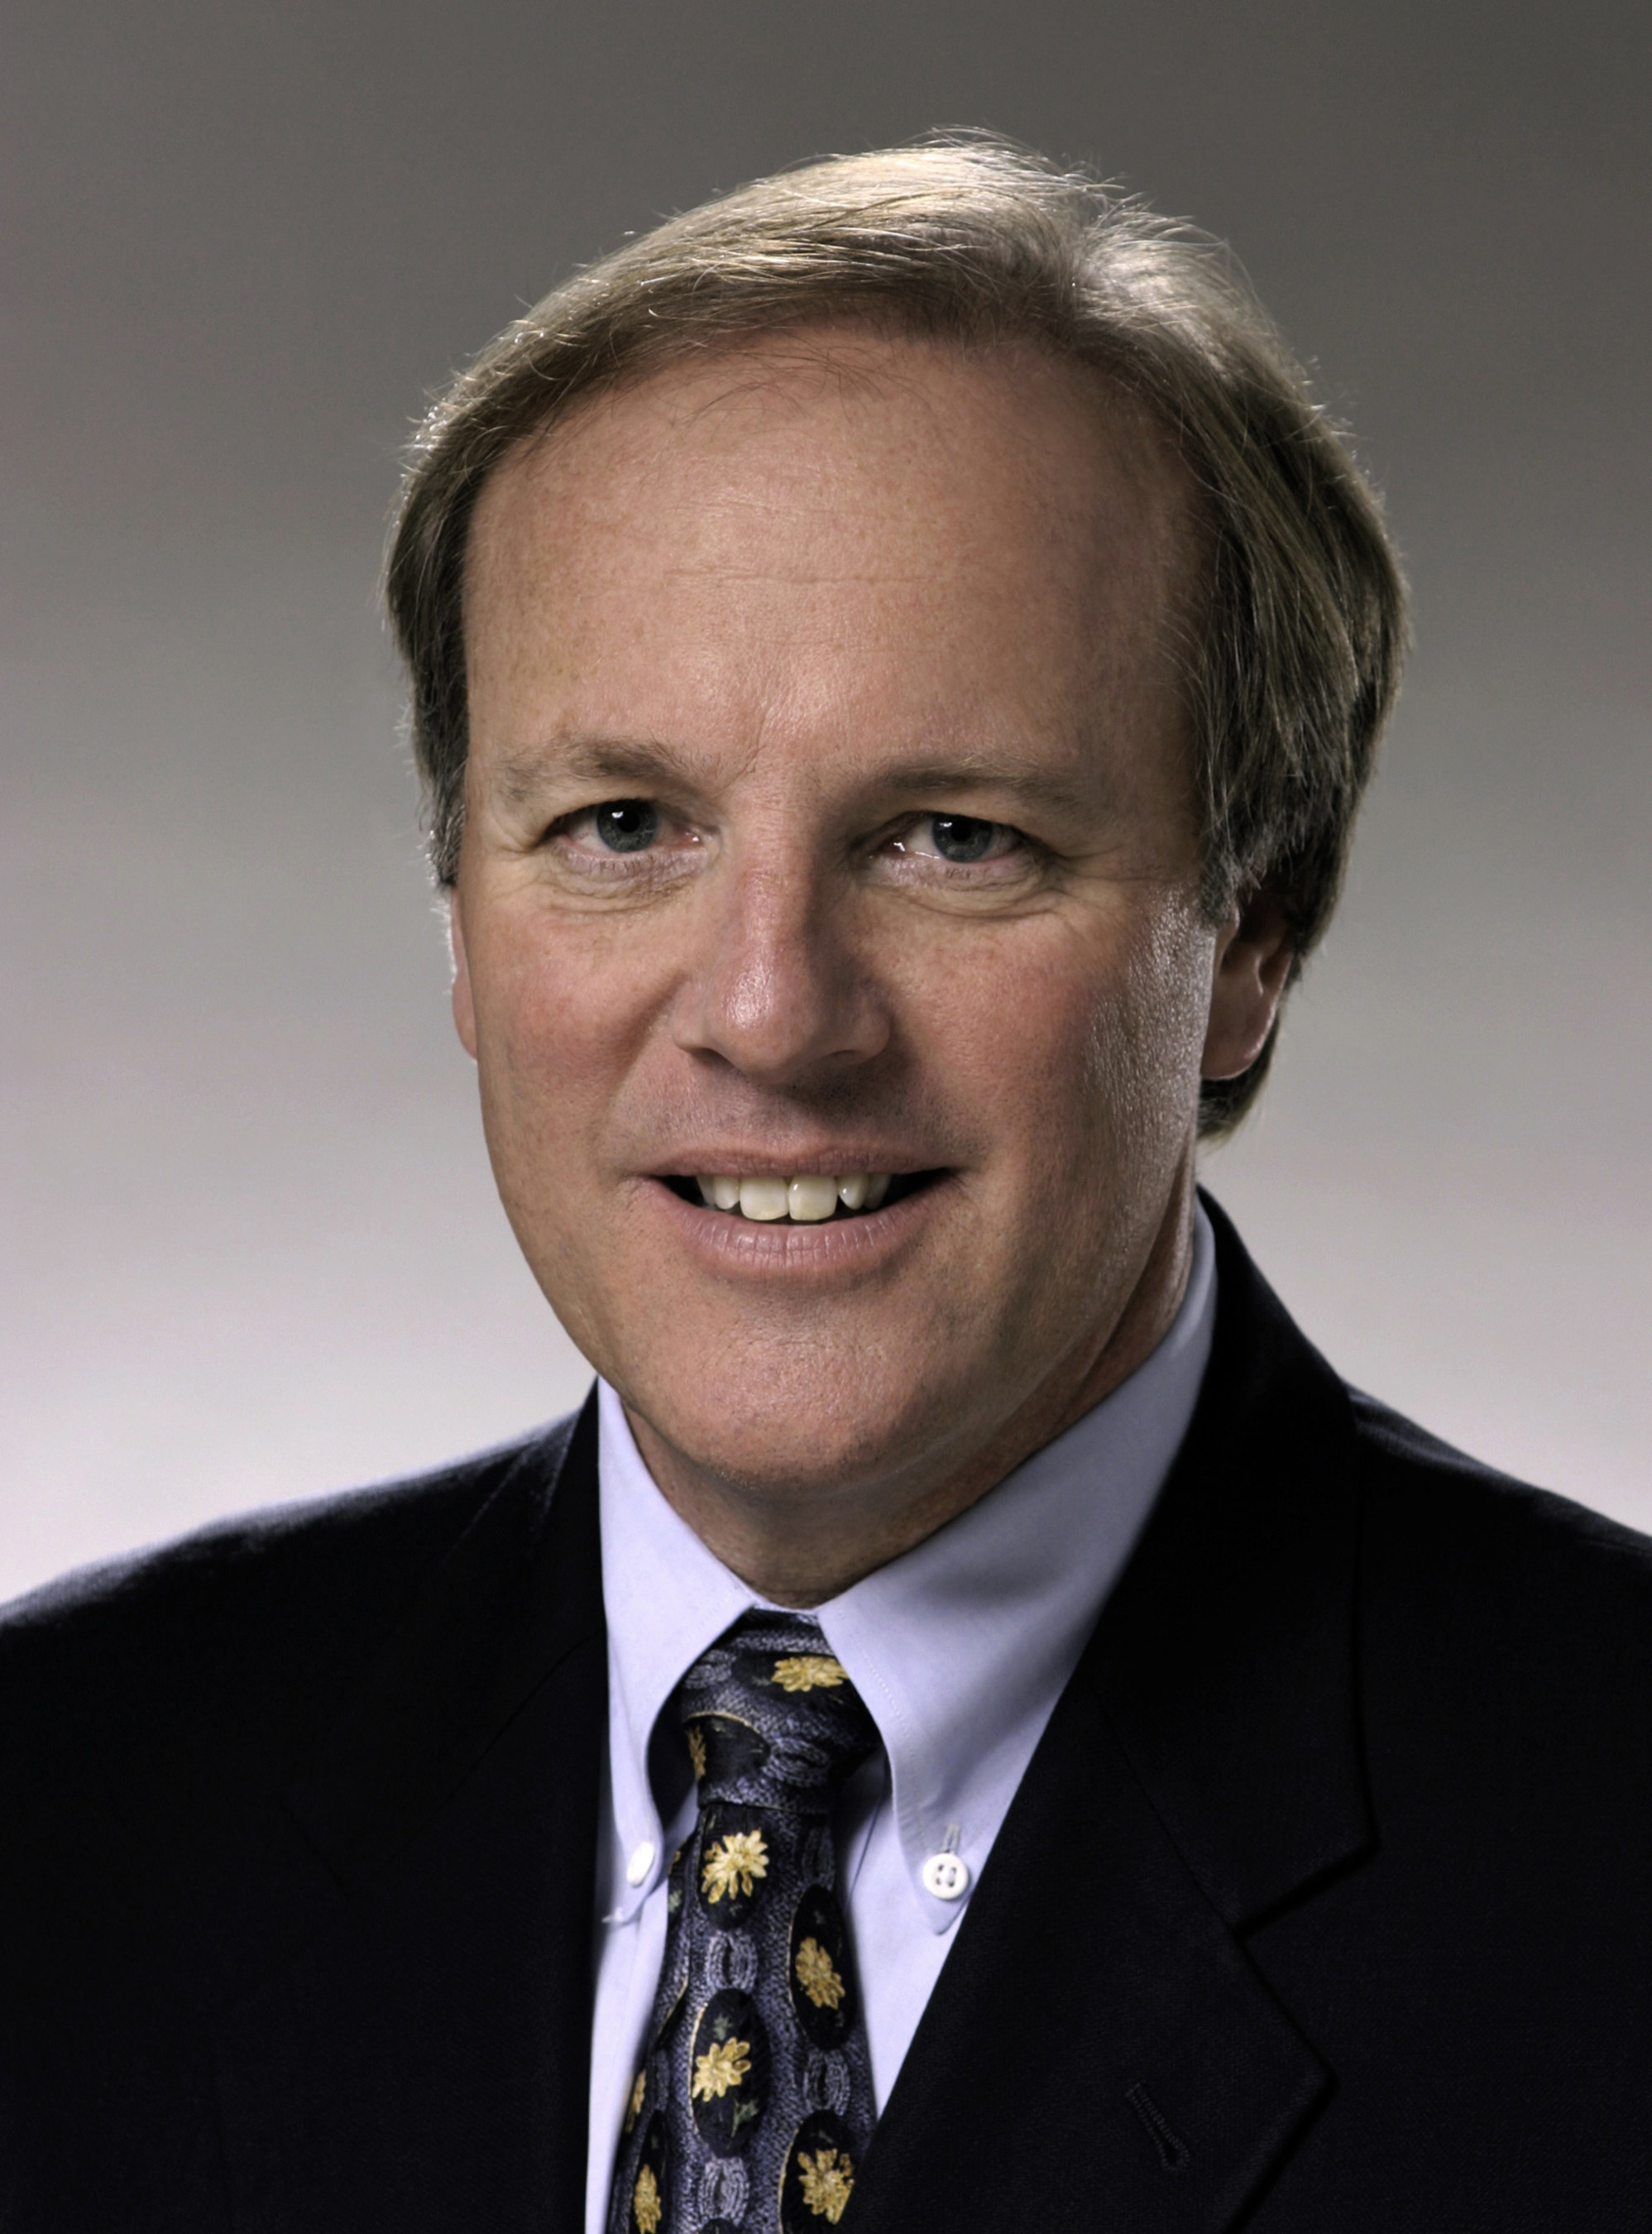 Former Chairman and CEO of Alaska Air Group joins drone start-up on Board of Directors.